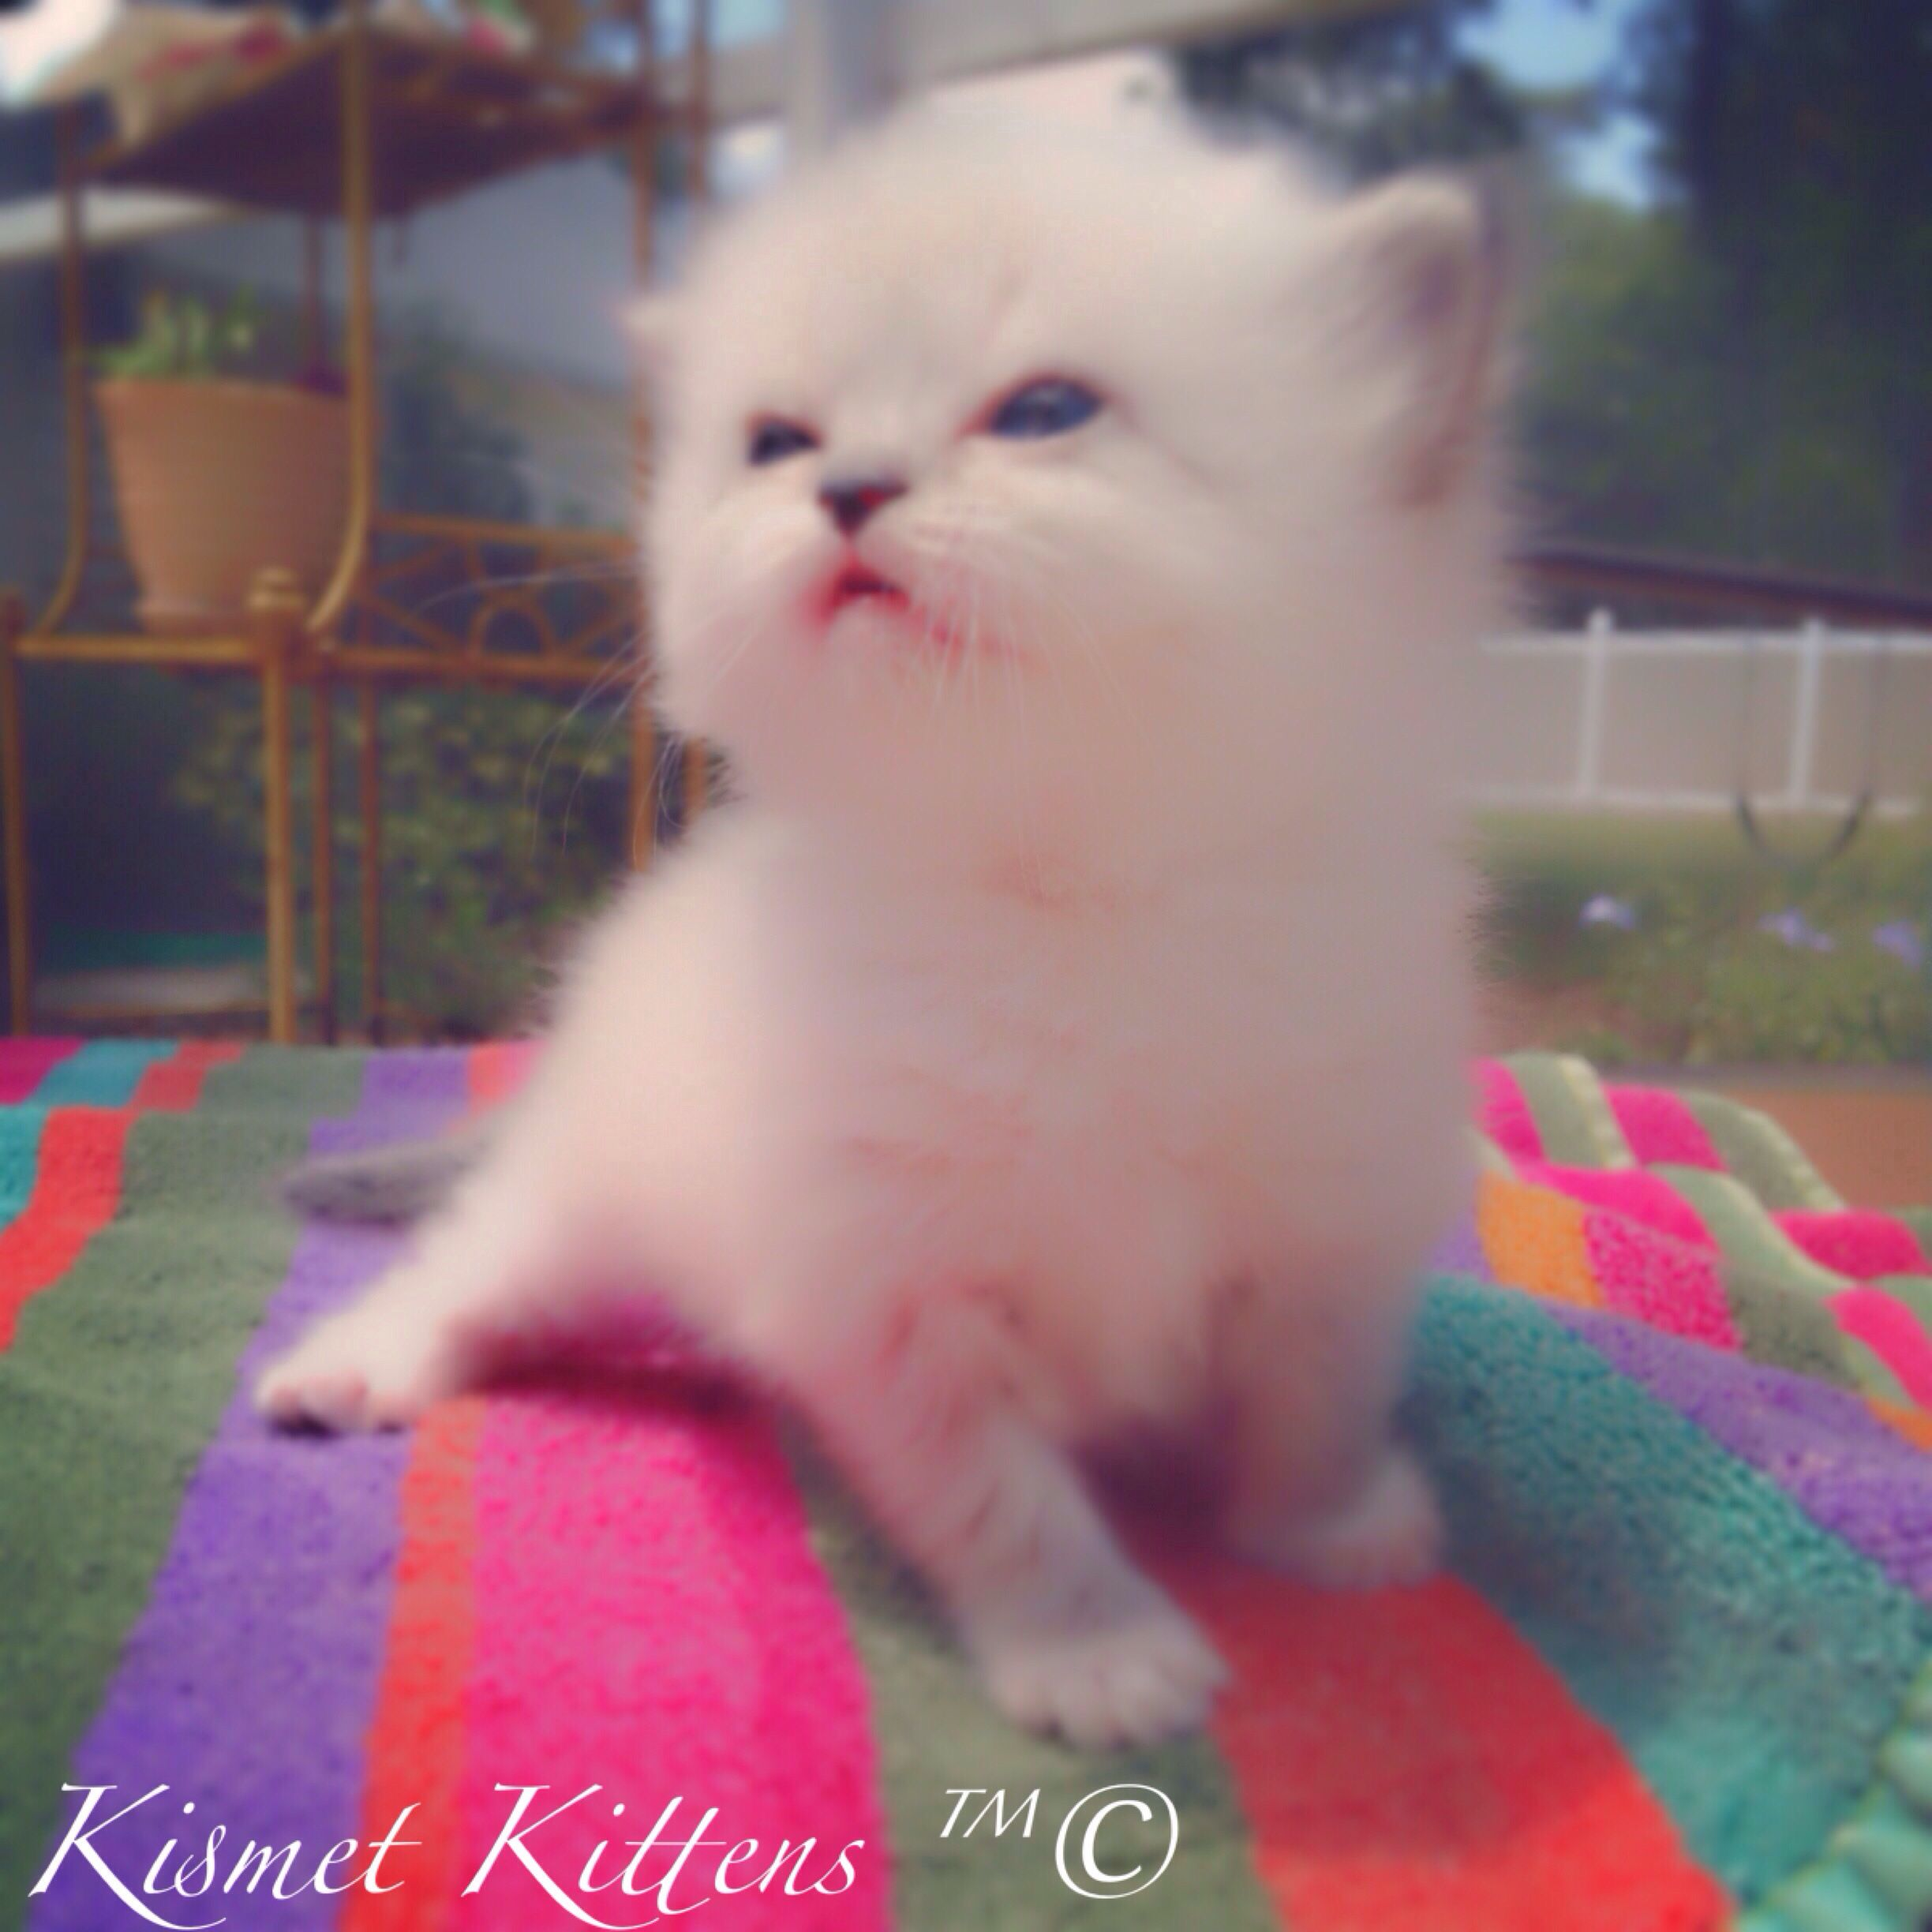 For Sale: Ex Small  ( Teacup ) Seal Point Doll Face Kitten with Blue Eyes Female Ready to go: 6/27/14 Shipping Avail. with a Prof. Animal Transporter Professional, Experienced, Ethical Breeder.  1 St Shots Vet Checked Health Certificate  1 Yr. Health Guarantee   To Reserve: Text: Persiankittyinfo@aol.com Text: 813-409-8418 Web: www.KismetKittens.com   #TeacupKittens, CatBreeders, #HymieKittens, #KittensBlueEyes, #PersiankittensForSale, #KittensFl